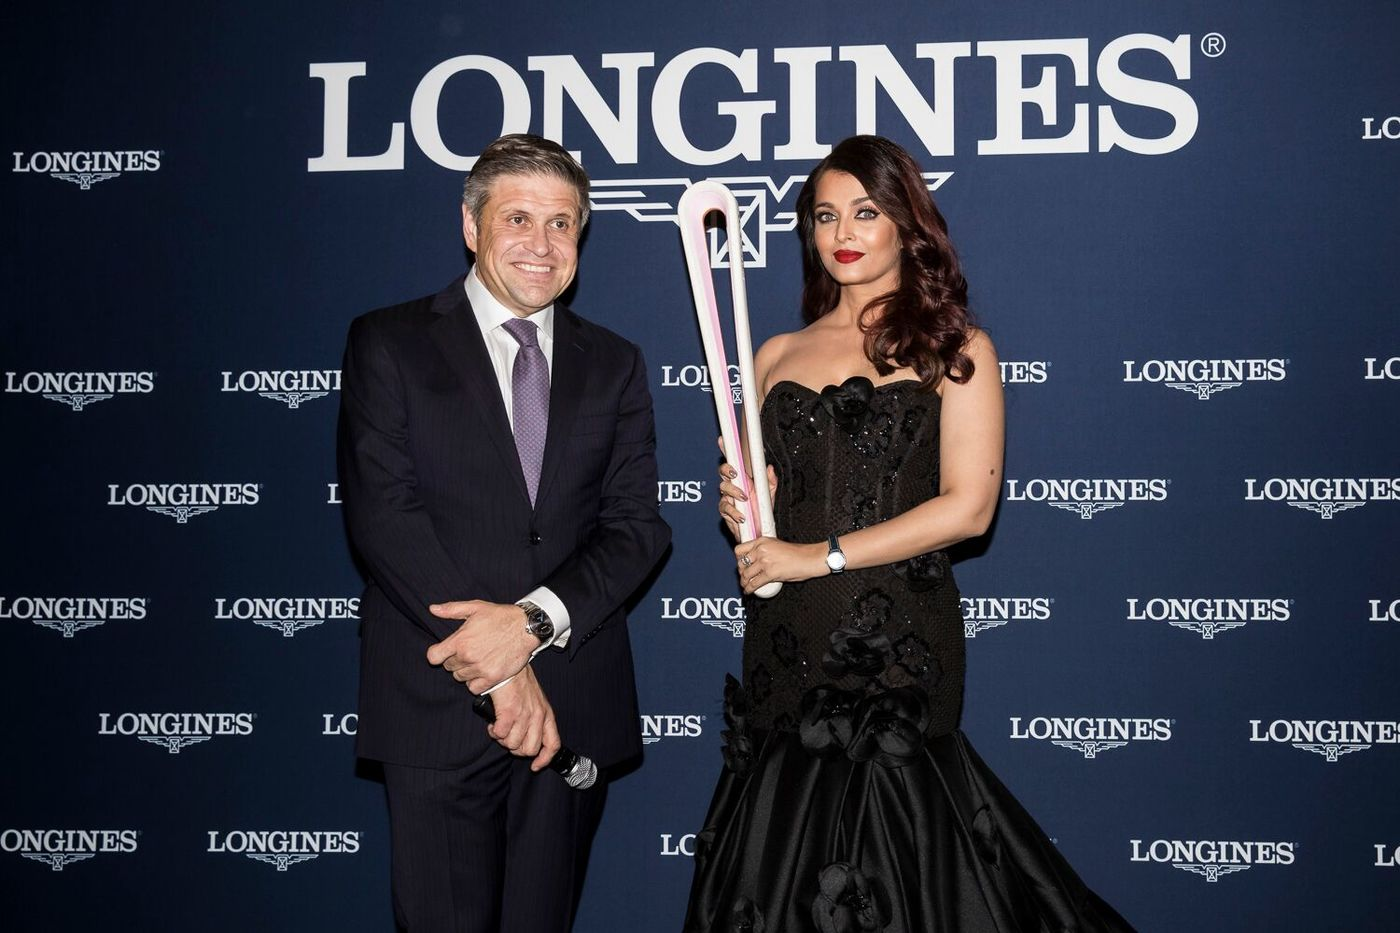 Longines Commonwealth Games Event: Longines and its Ambassador of Elegance Aishwarya Rai Bachchan welcome the 2018 Queen's Baton to the brand new Longines boutique in Sydney  2